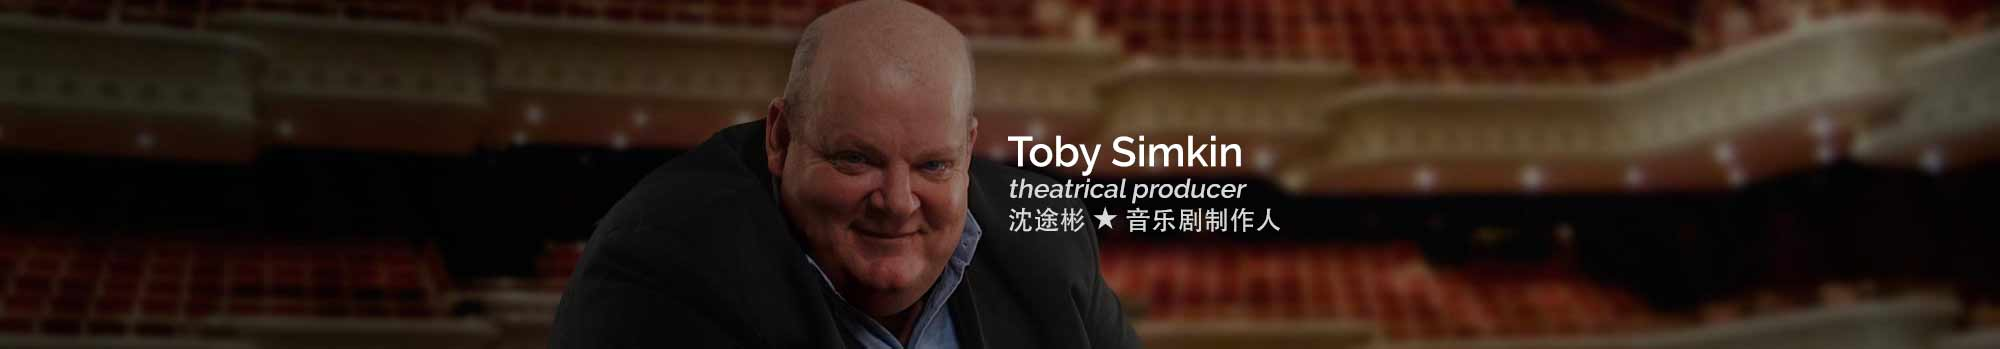 Toby Simkin Broadway Theatre Producer in China